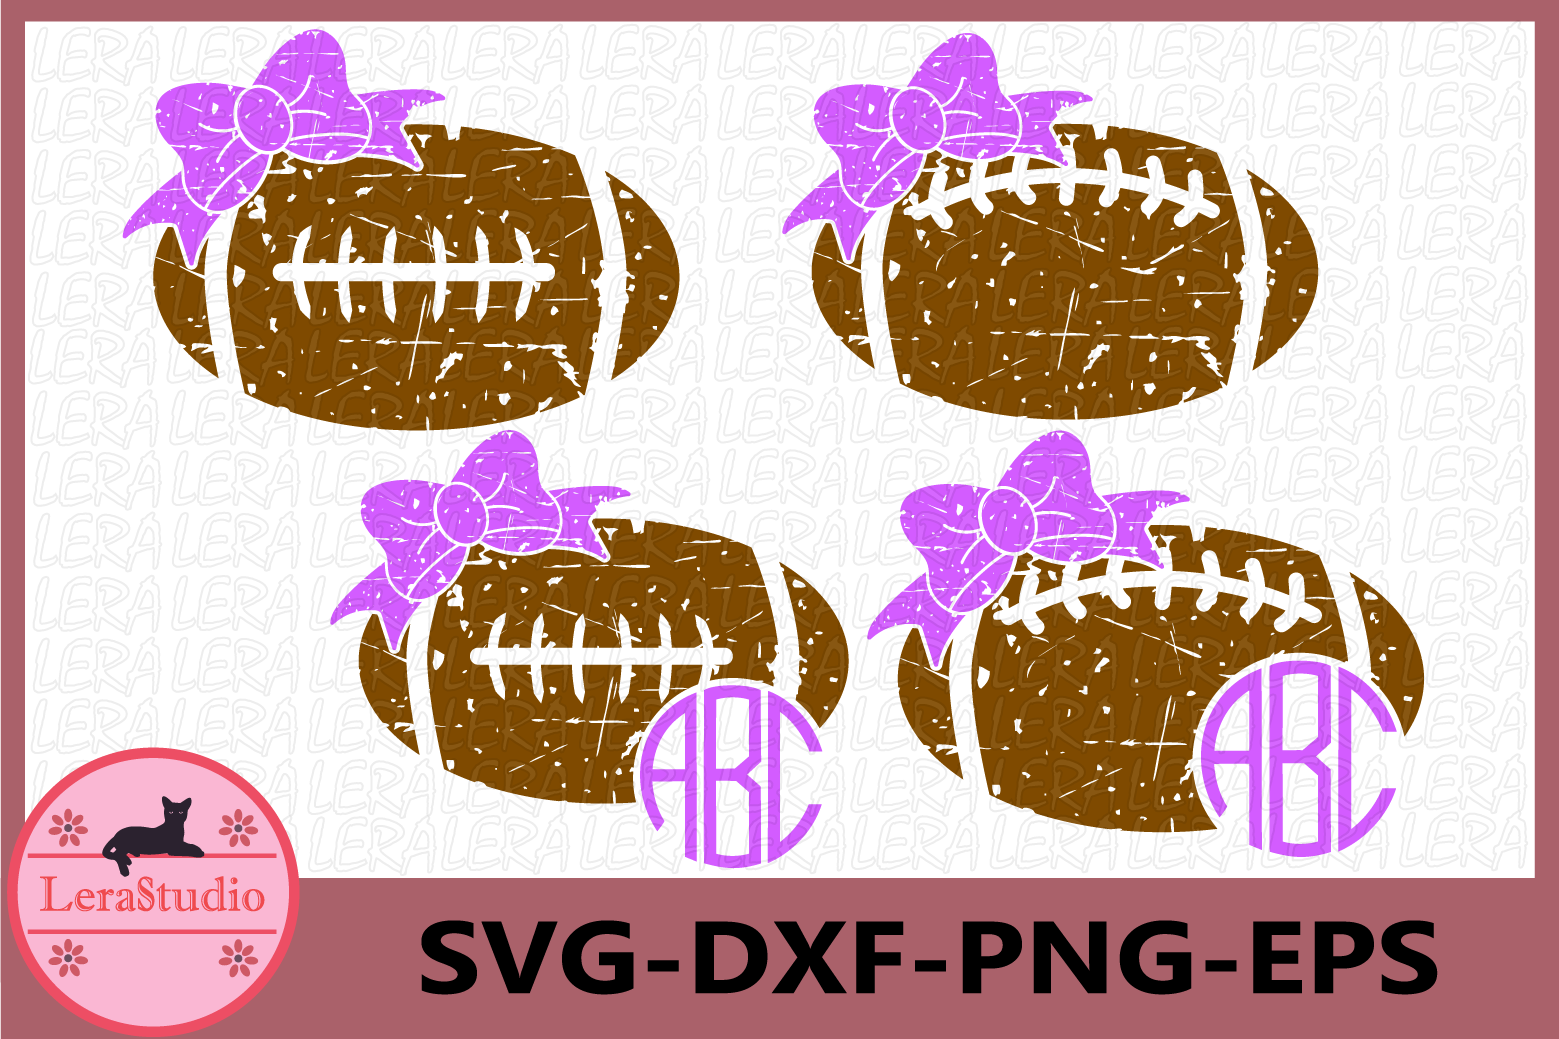 Football svg, Football Grunge SVG, Football Laces, Football example image 1